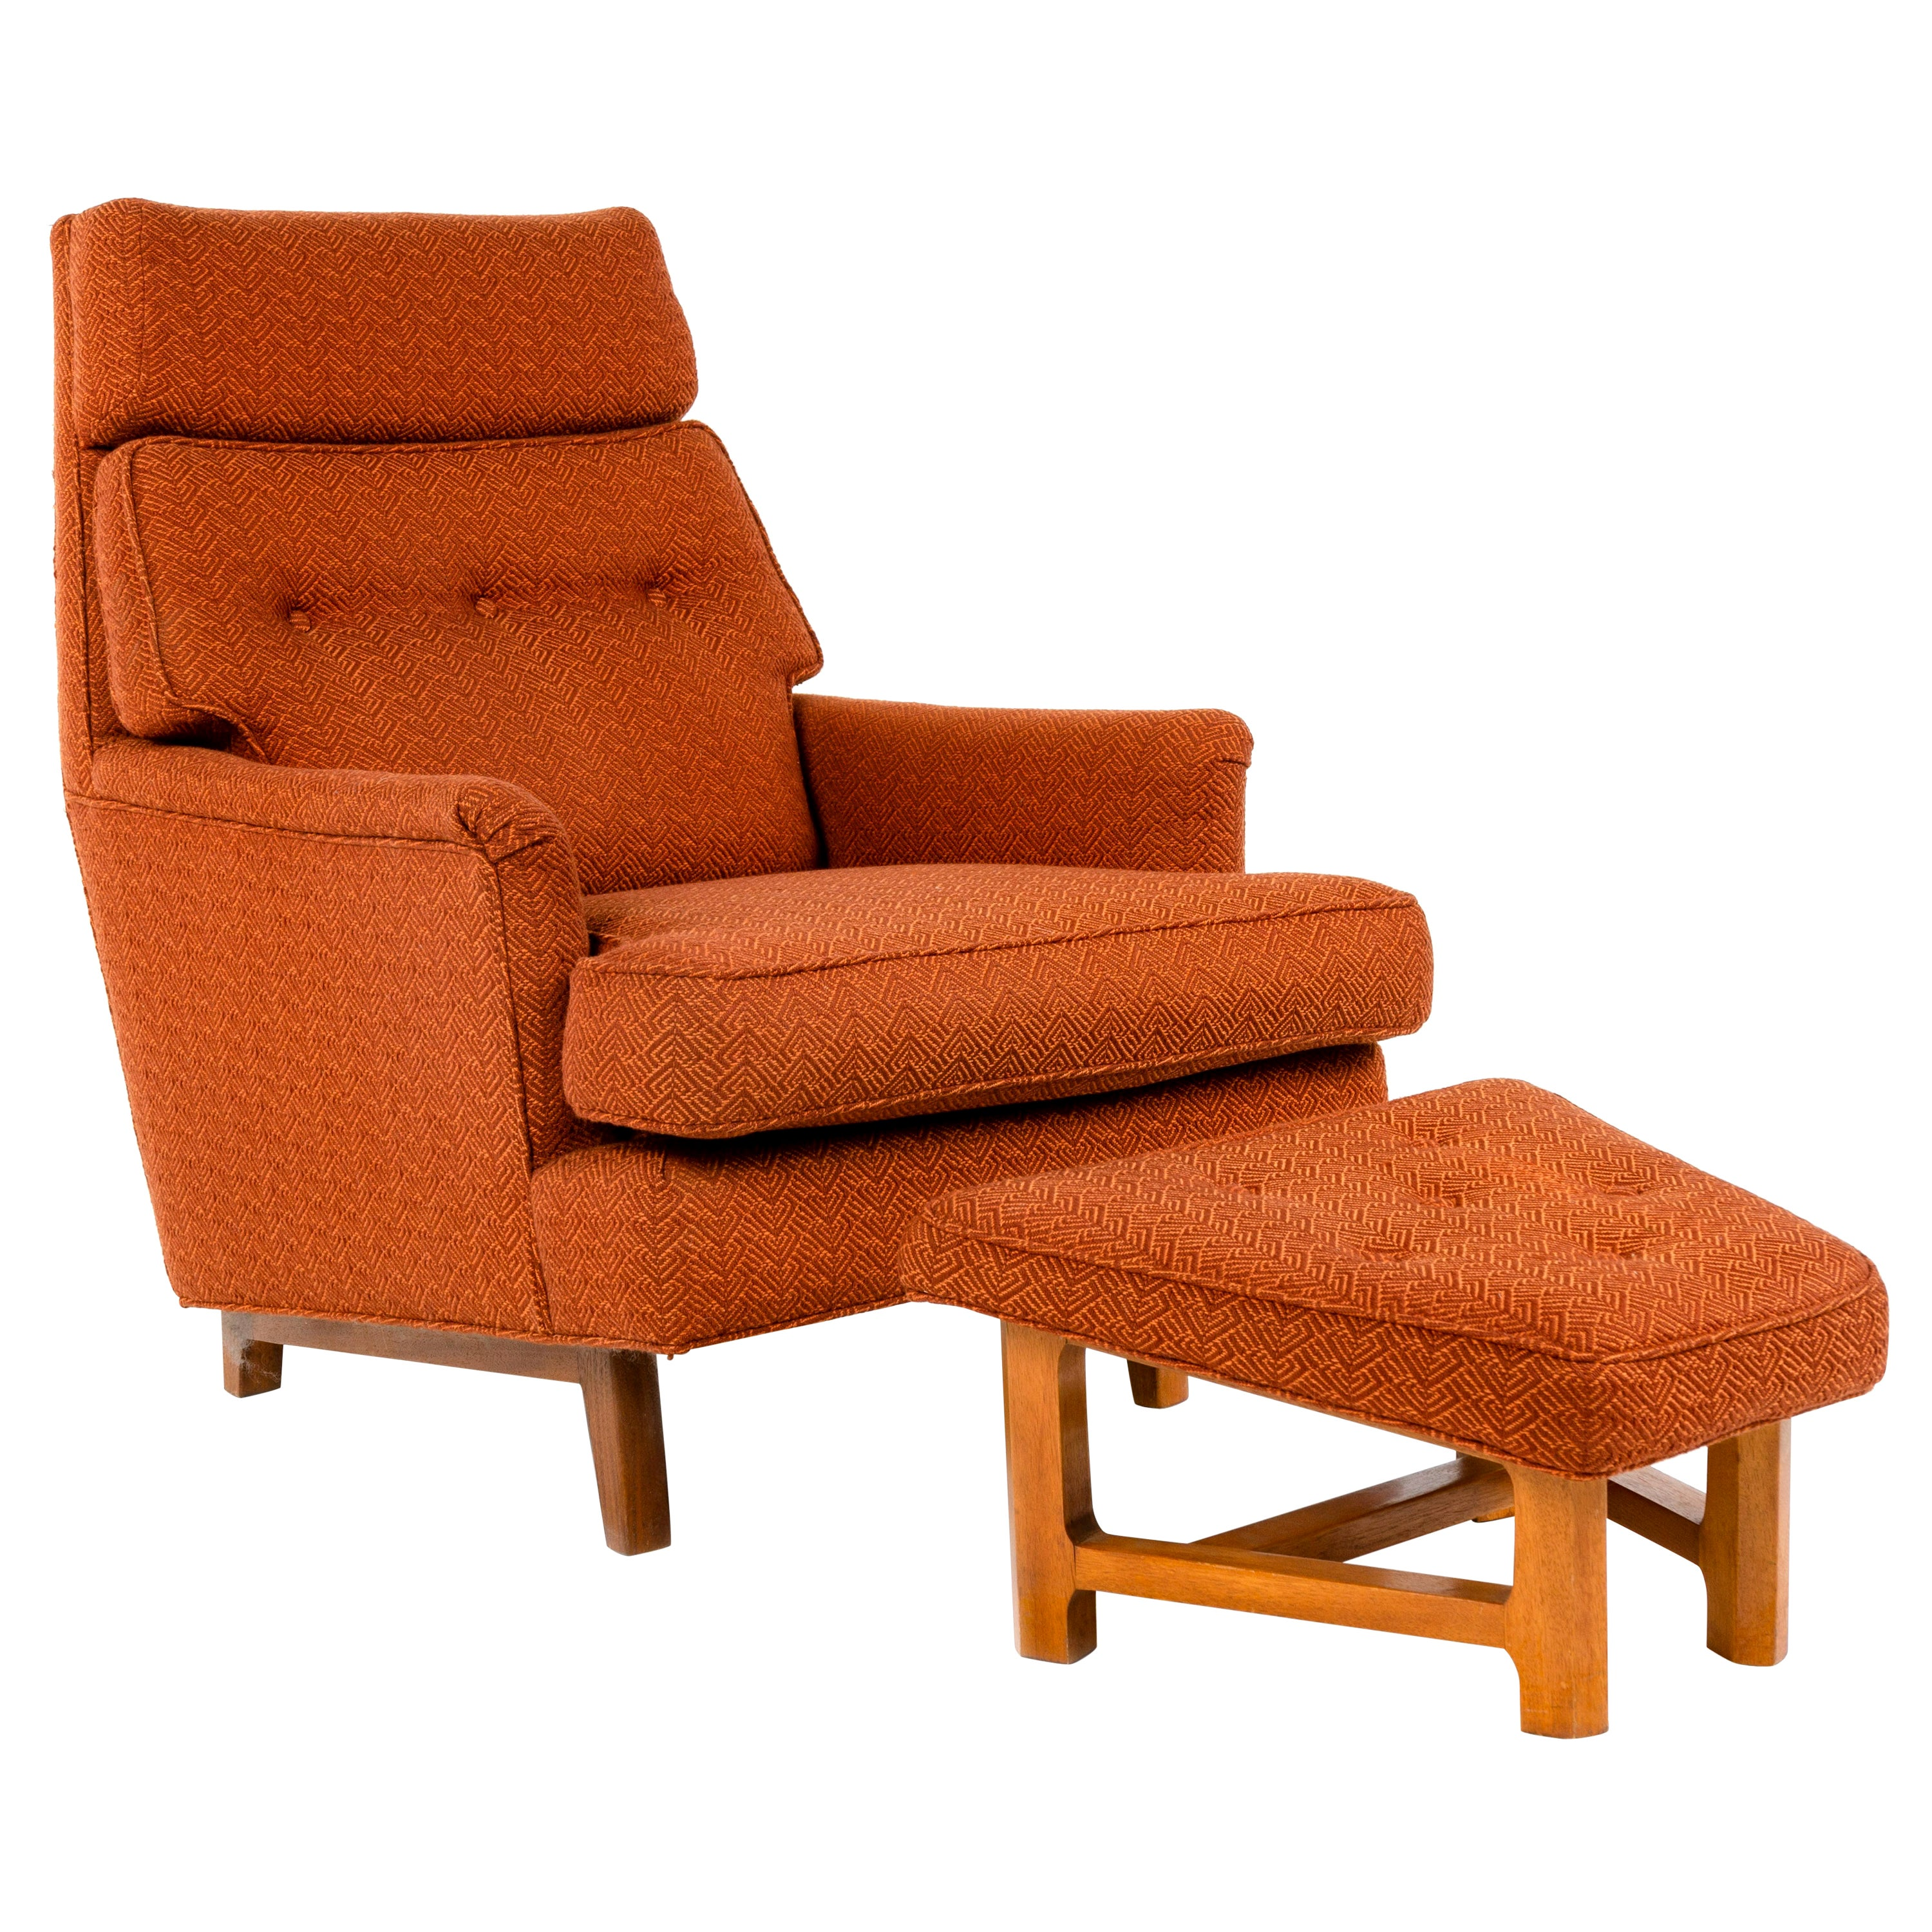 1950s Lounge Chair and Ottoman by Edward Wormley for Dunbar